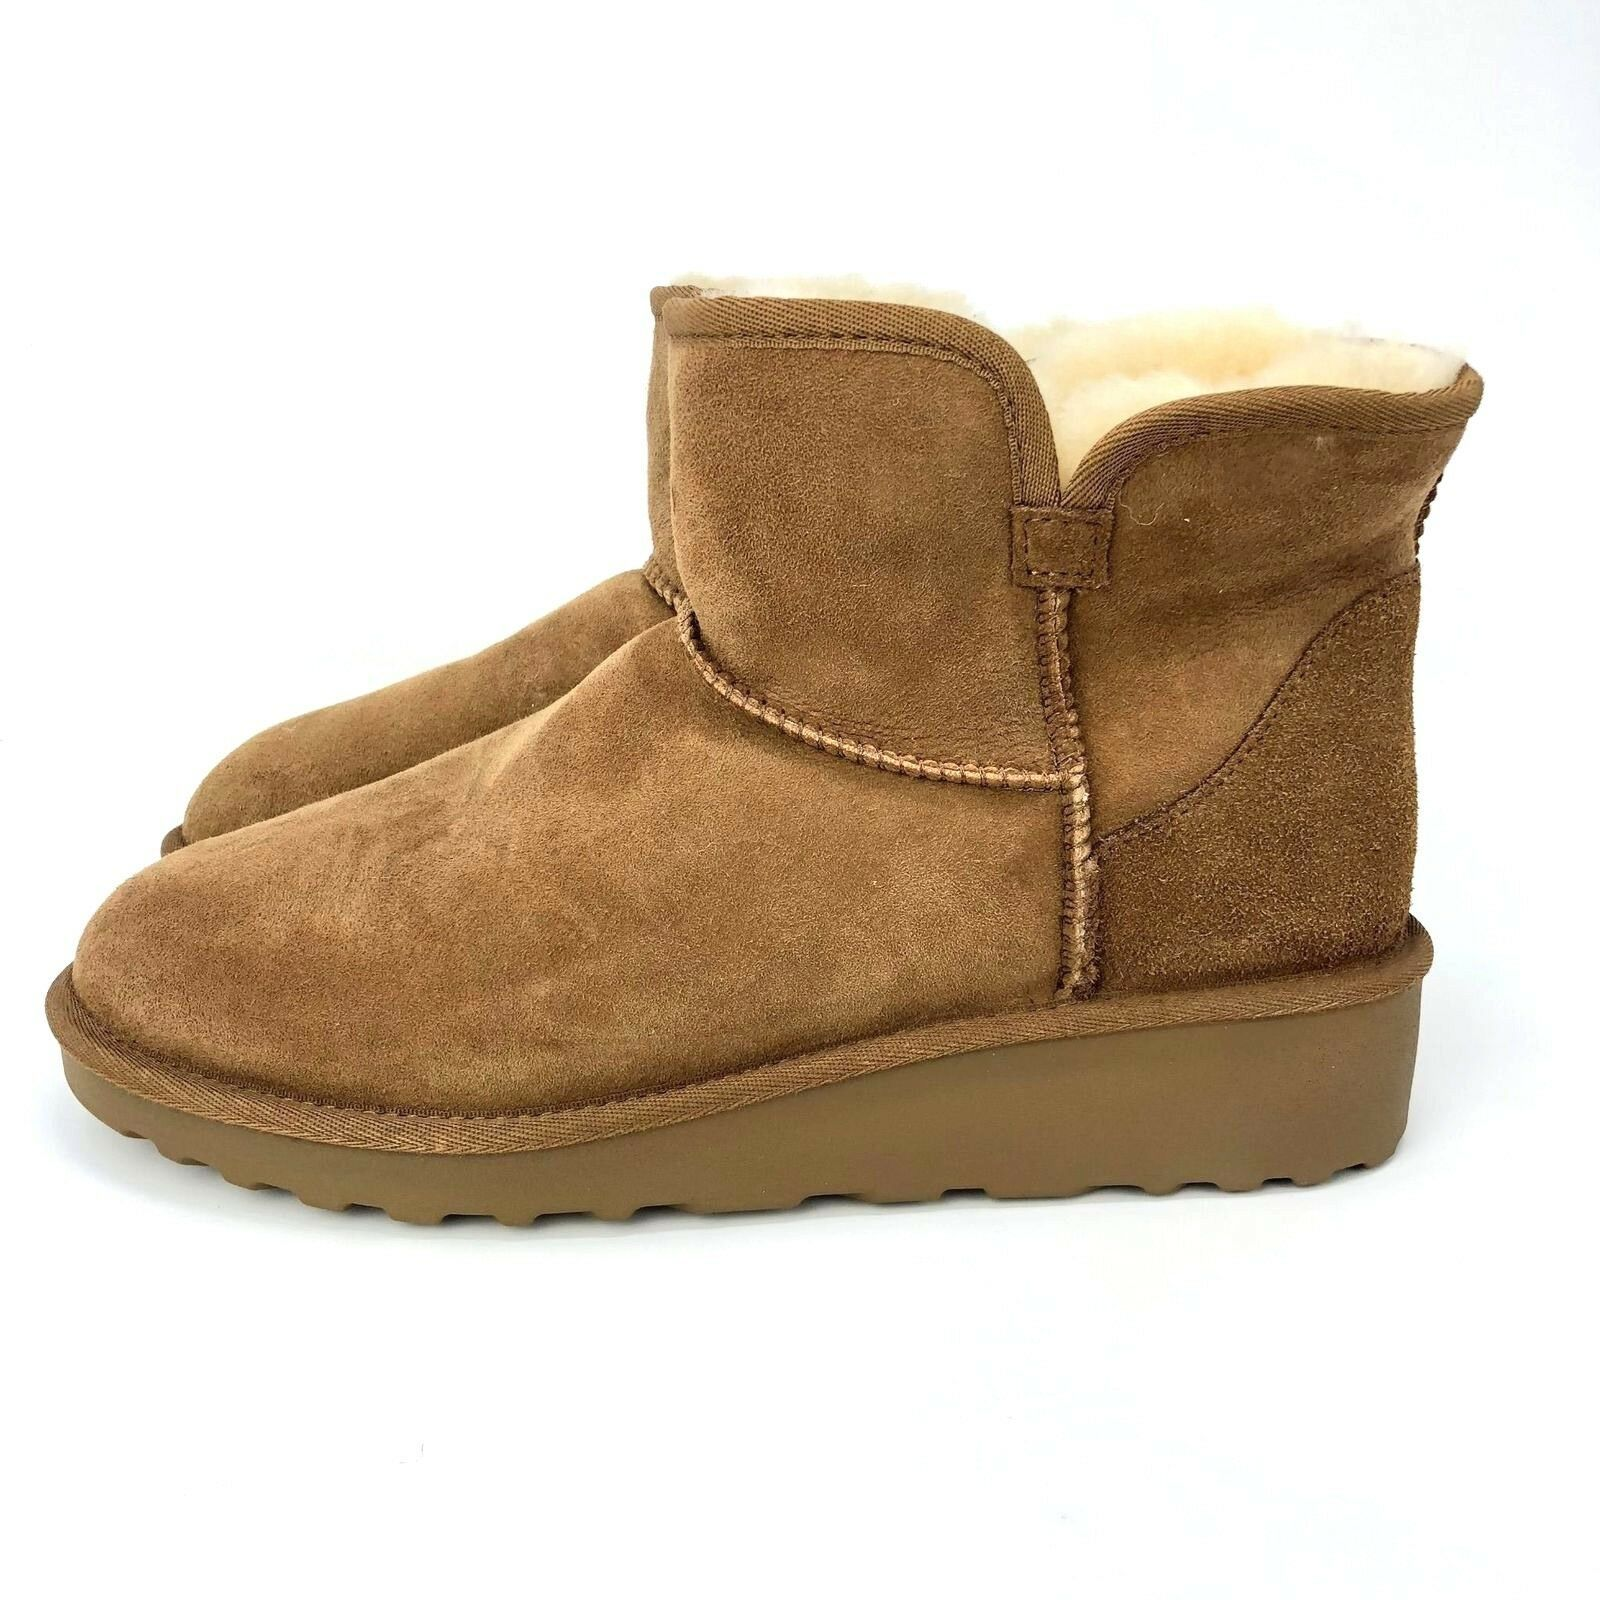 Brand New Kirkland Signature Ladies' Sheep Skin Shearling Short Boots Chestnut